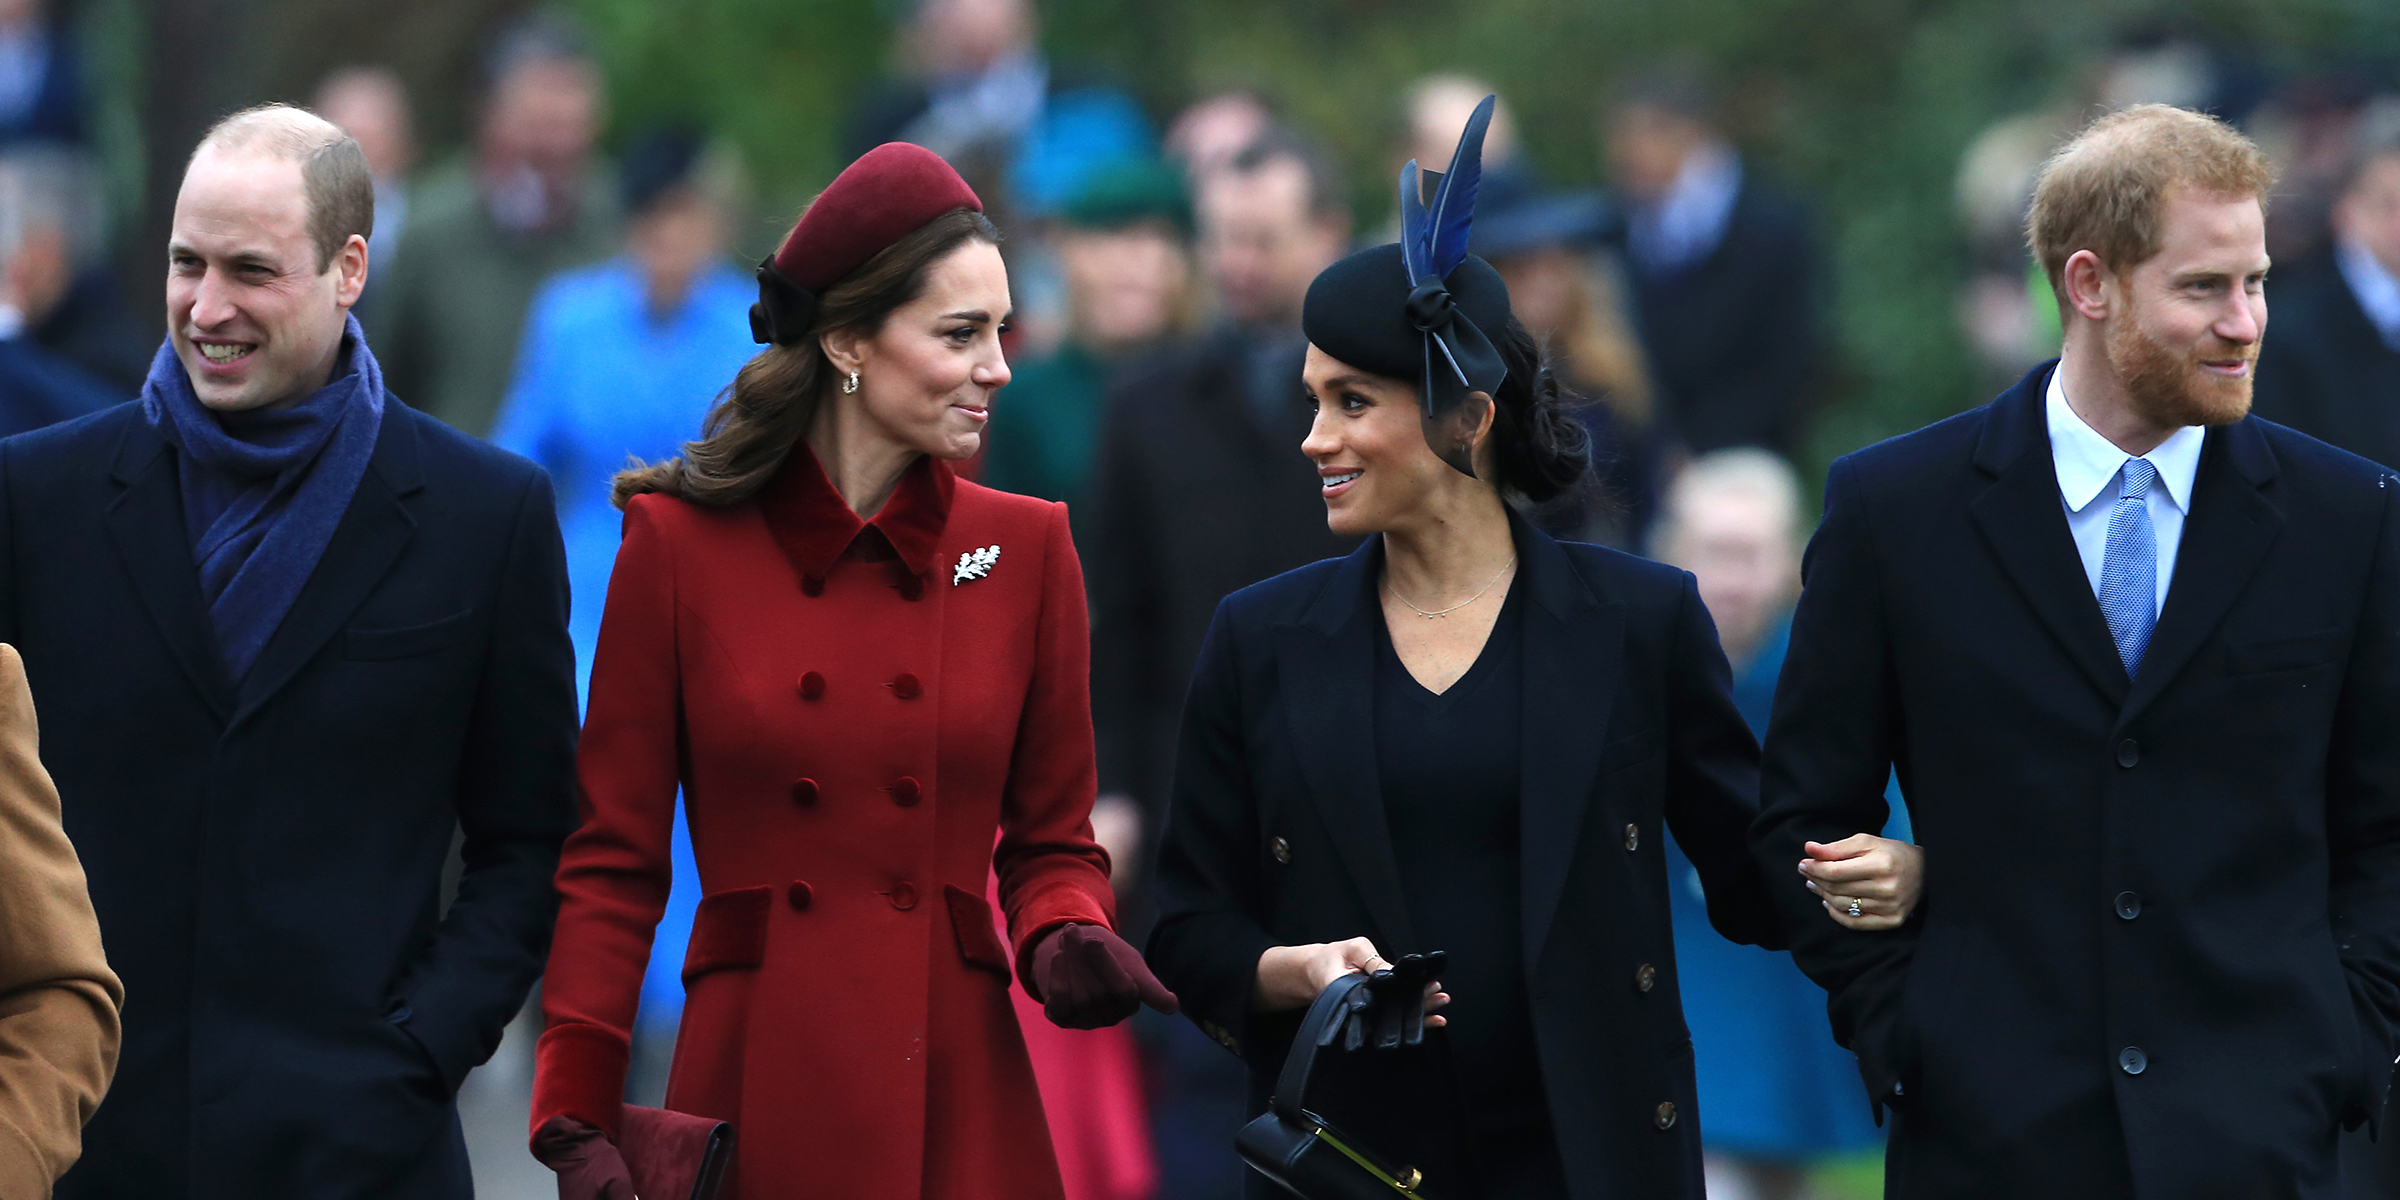 Prince William, Kate Middleton and Meghan Markle, Prince Harry